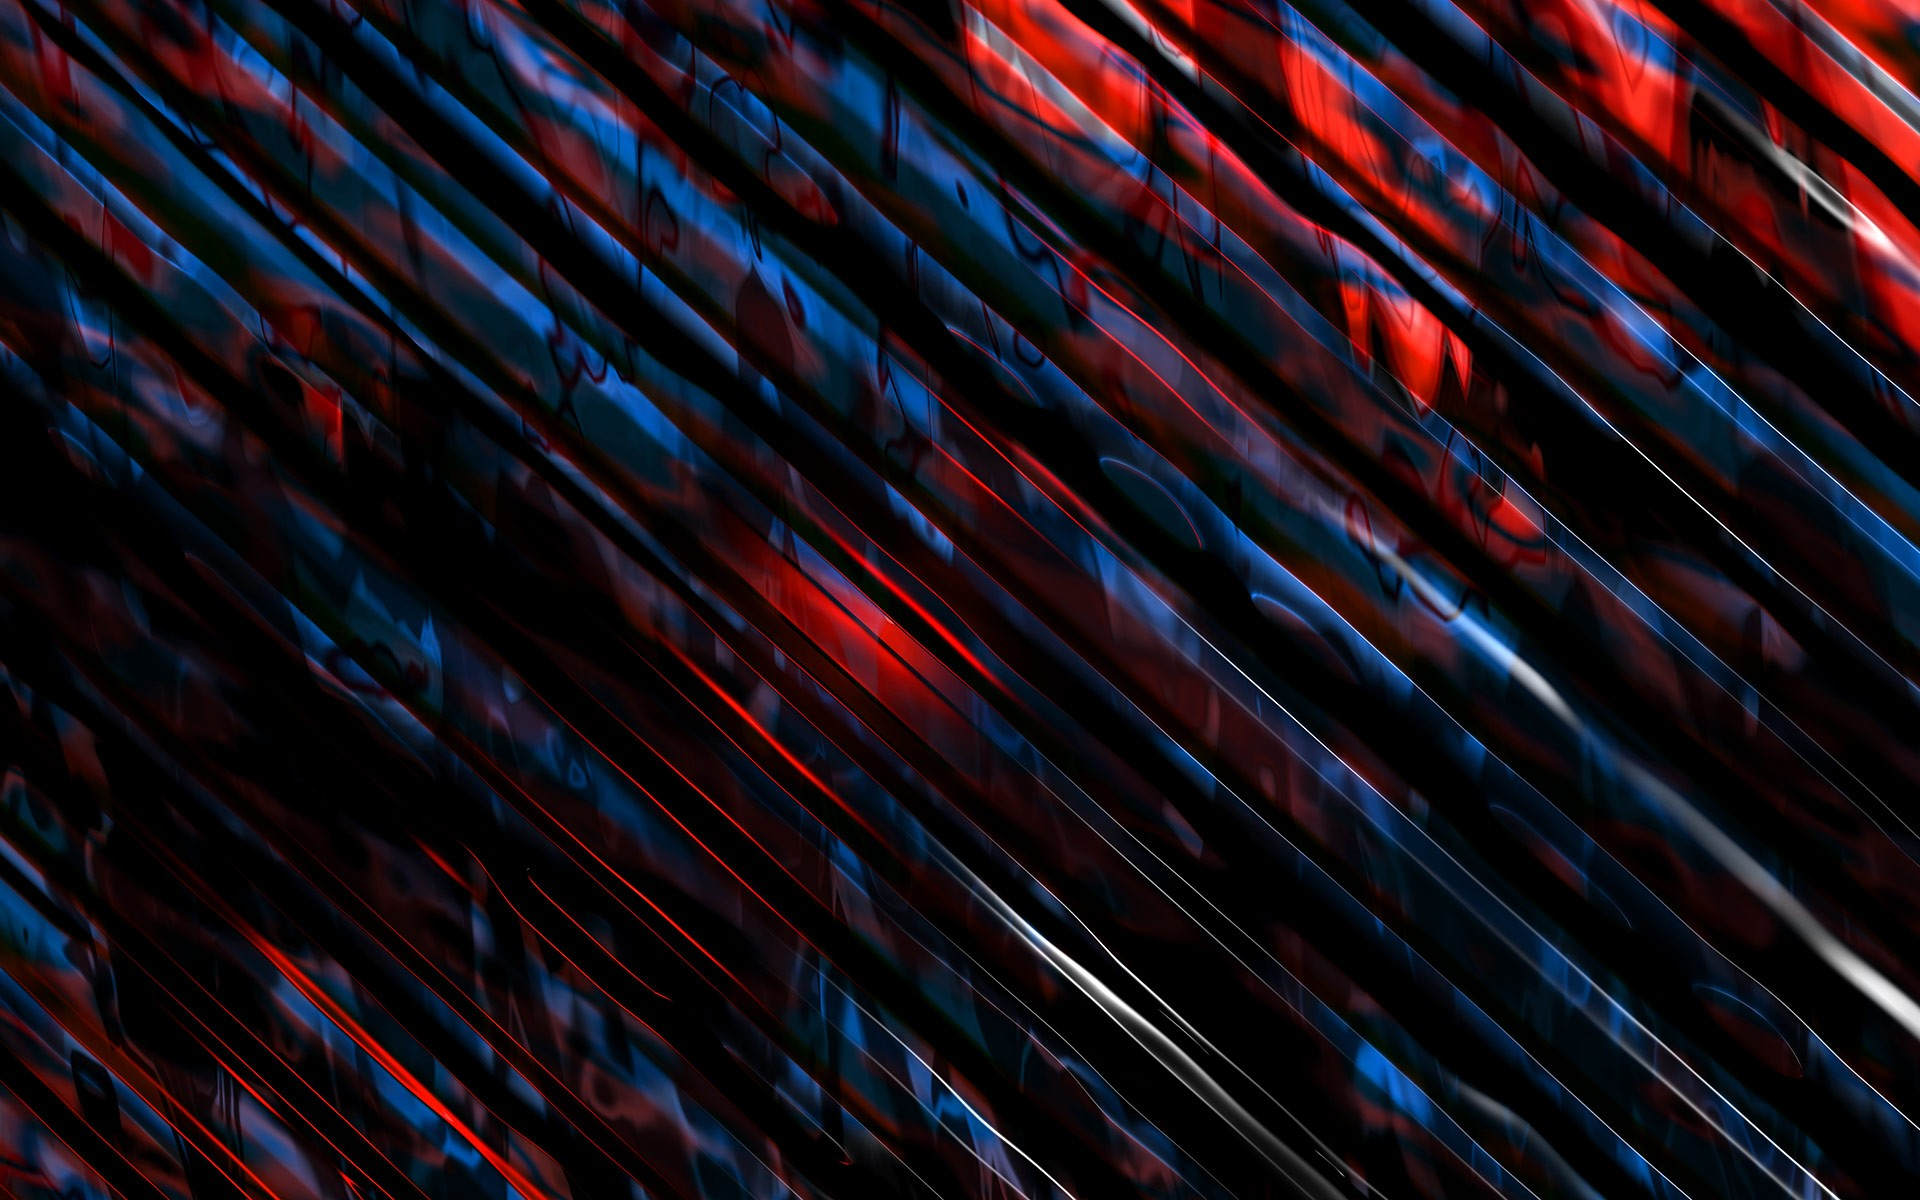 Hd 3d Neon Wallpapers Abstract Diagonal Lines Wallpapers Hd Desktop And